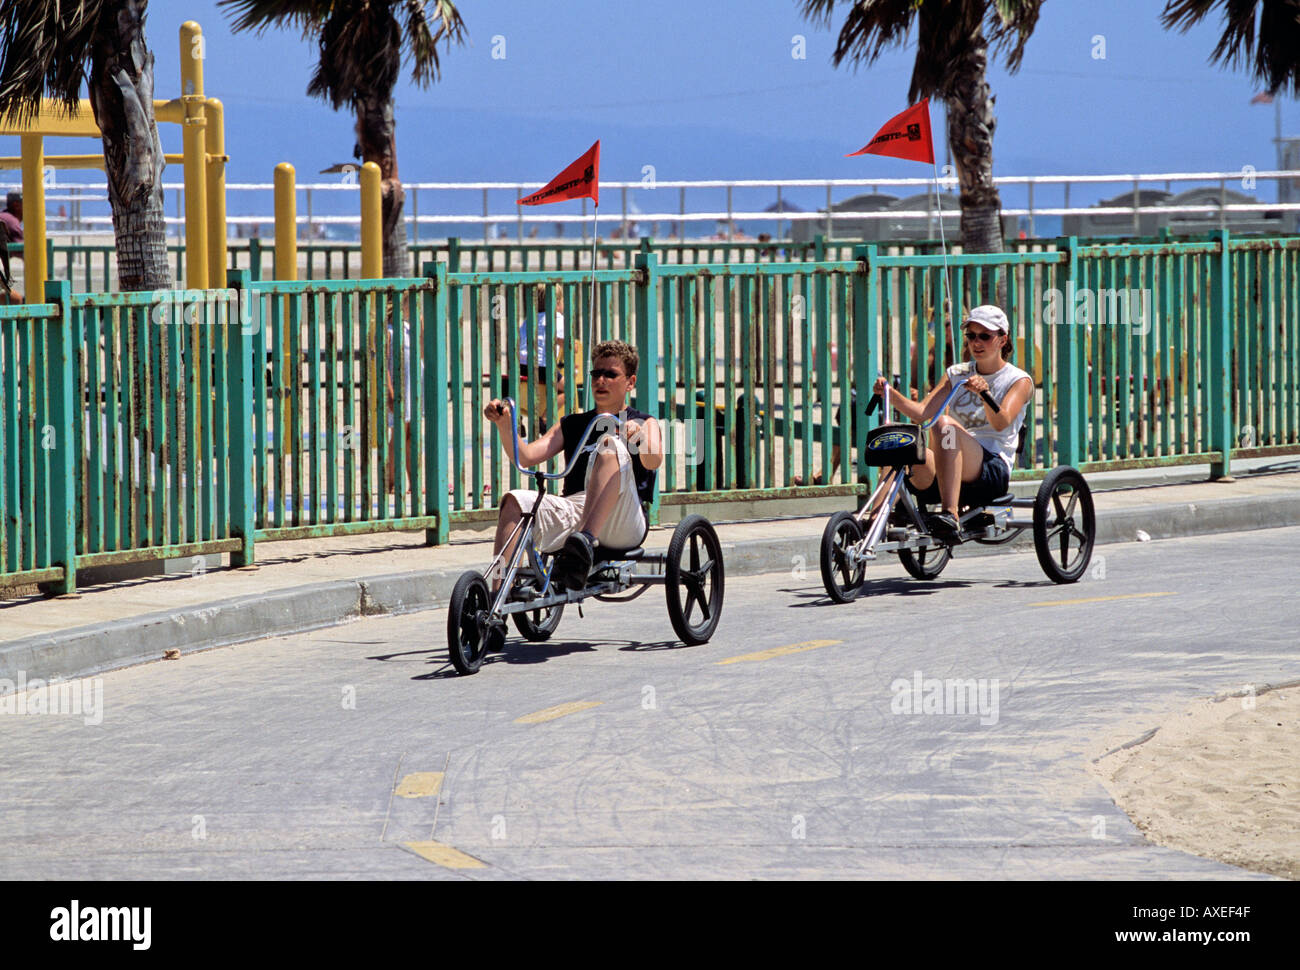 Tricycle riders on the cycle path at Venice Beach California - Stock Image